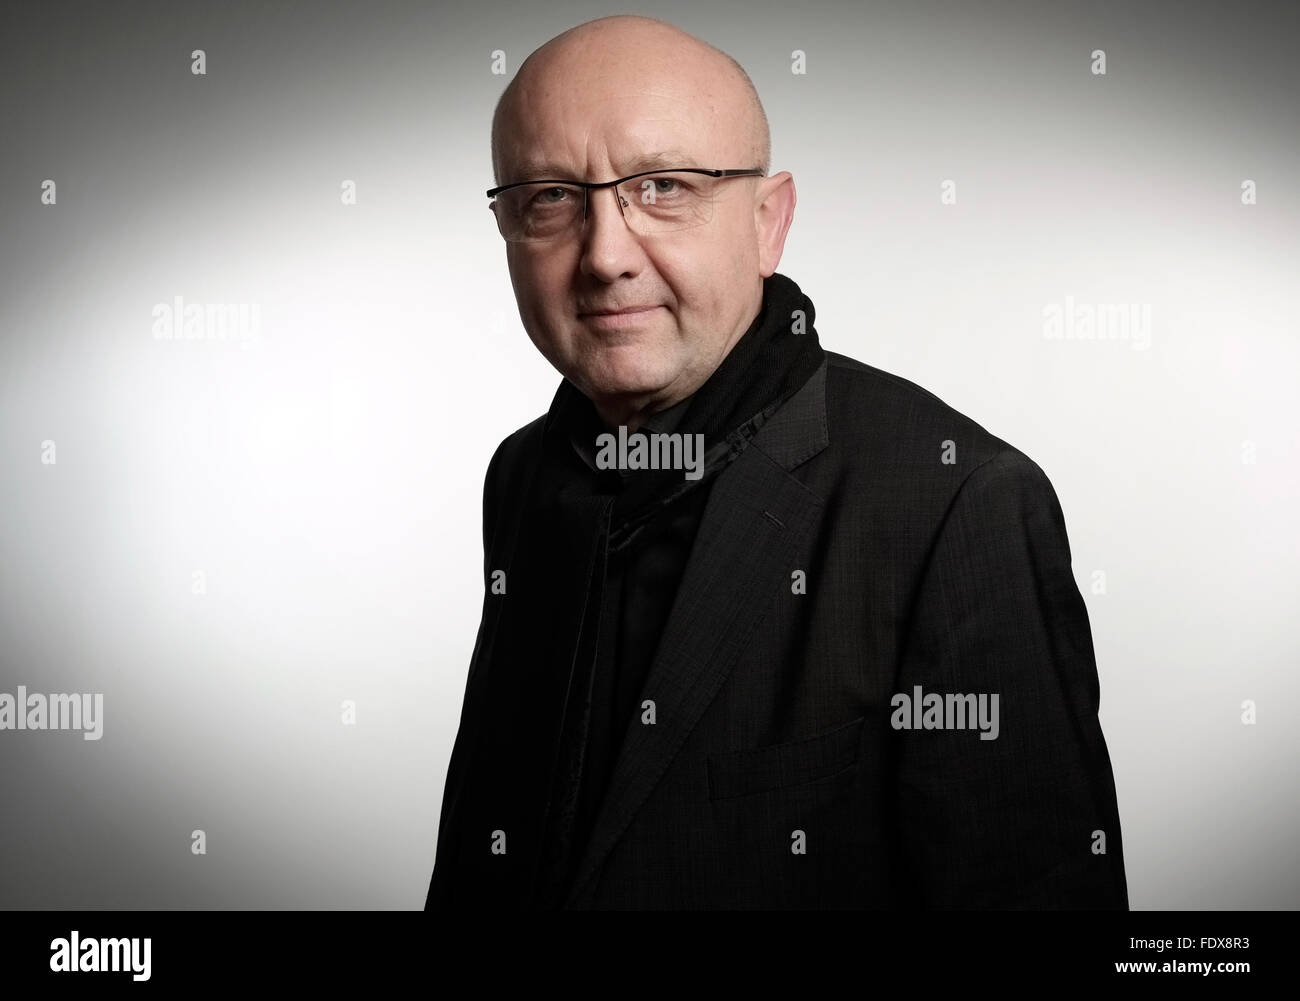 Berlin, Germany, Prof. Ulrich Weinberg posing for a photo in Berlin Stock Photo